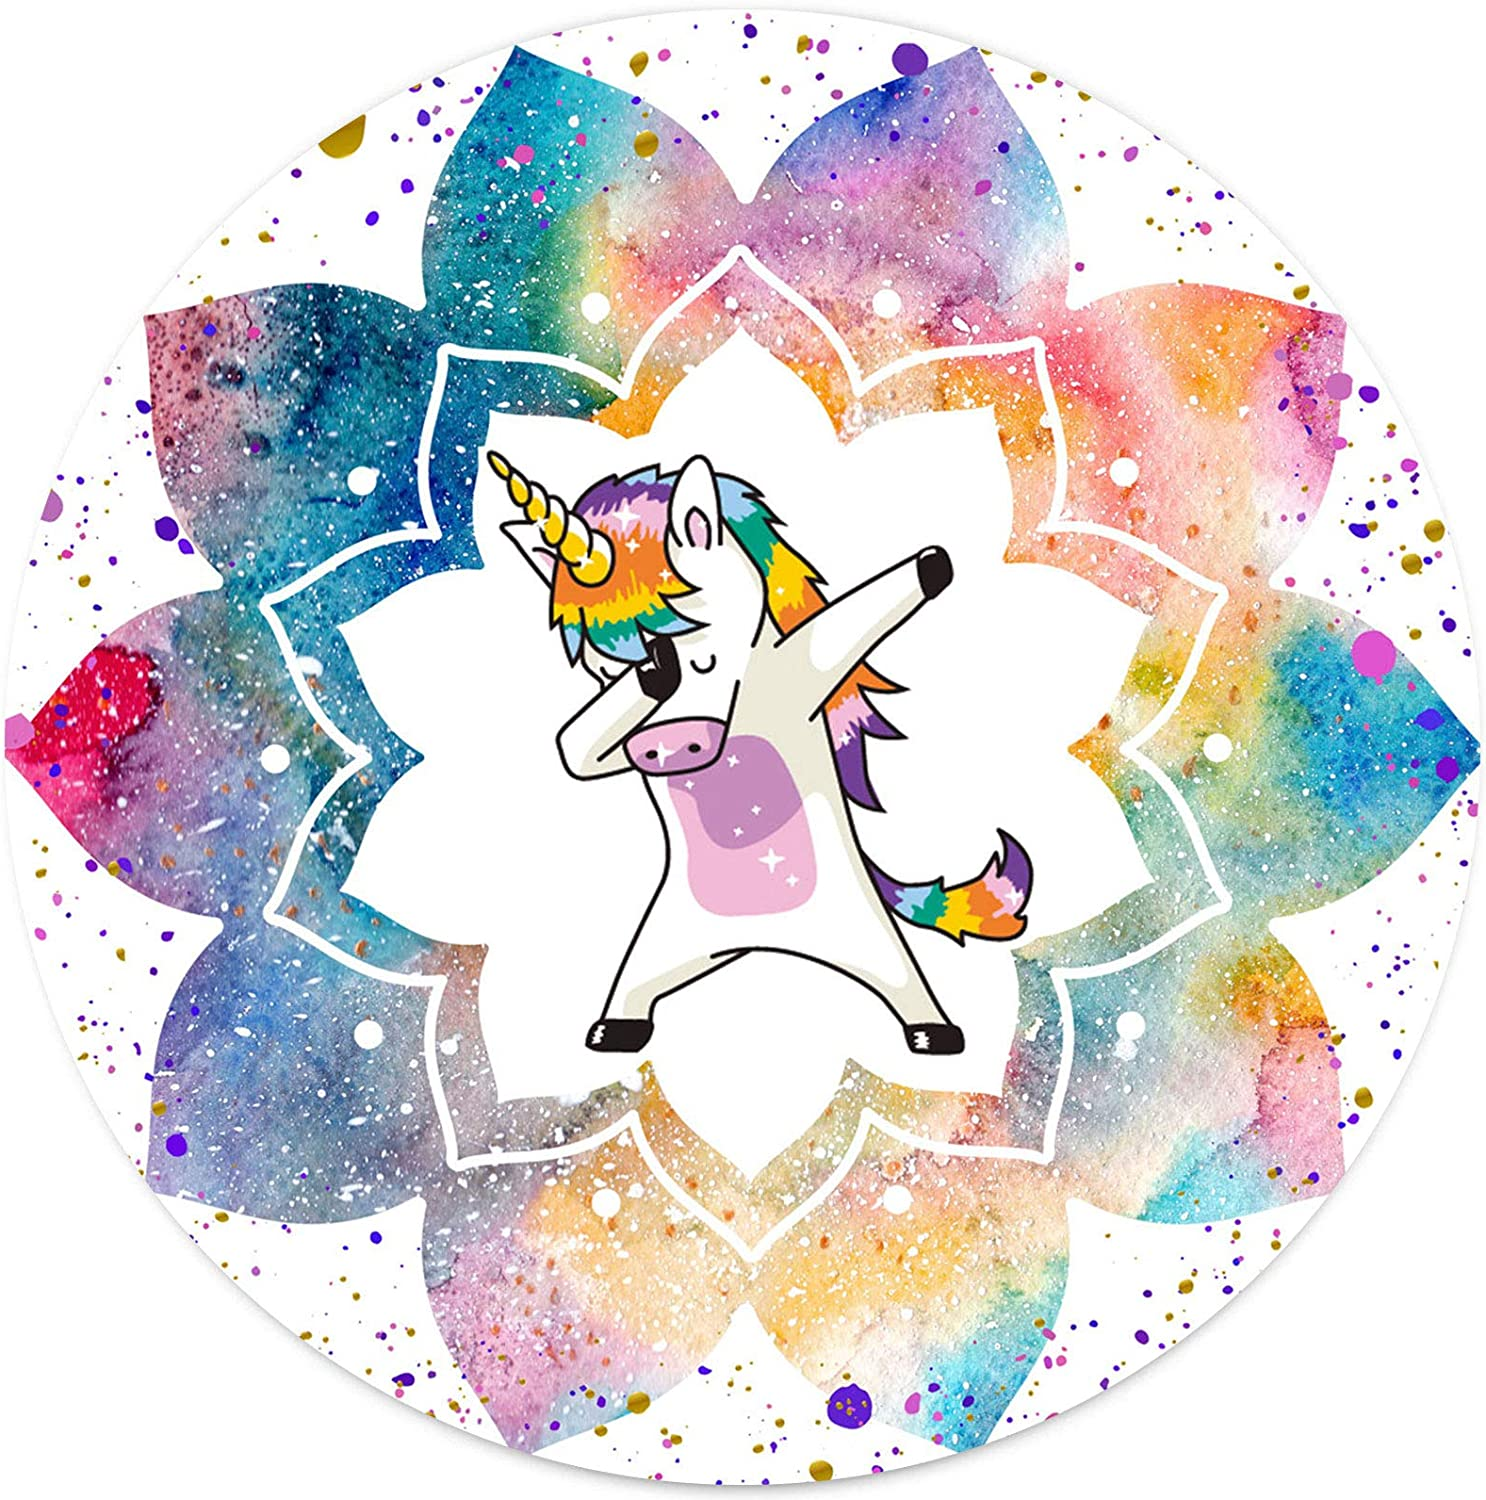 Unicorn Round Mouse Pad for Kids, Funny Dancing Meme Cosmic Galaxy Watercolor Rainbow Mandala Colorful Flower Mousepad for Laptop Computer Gaming Home Office